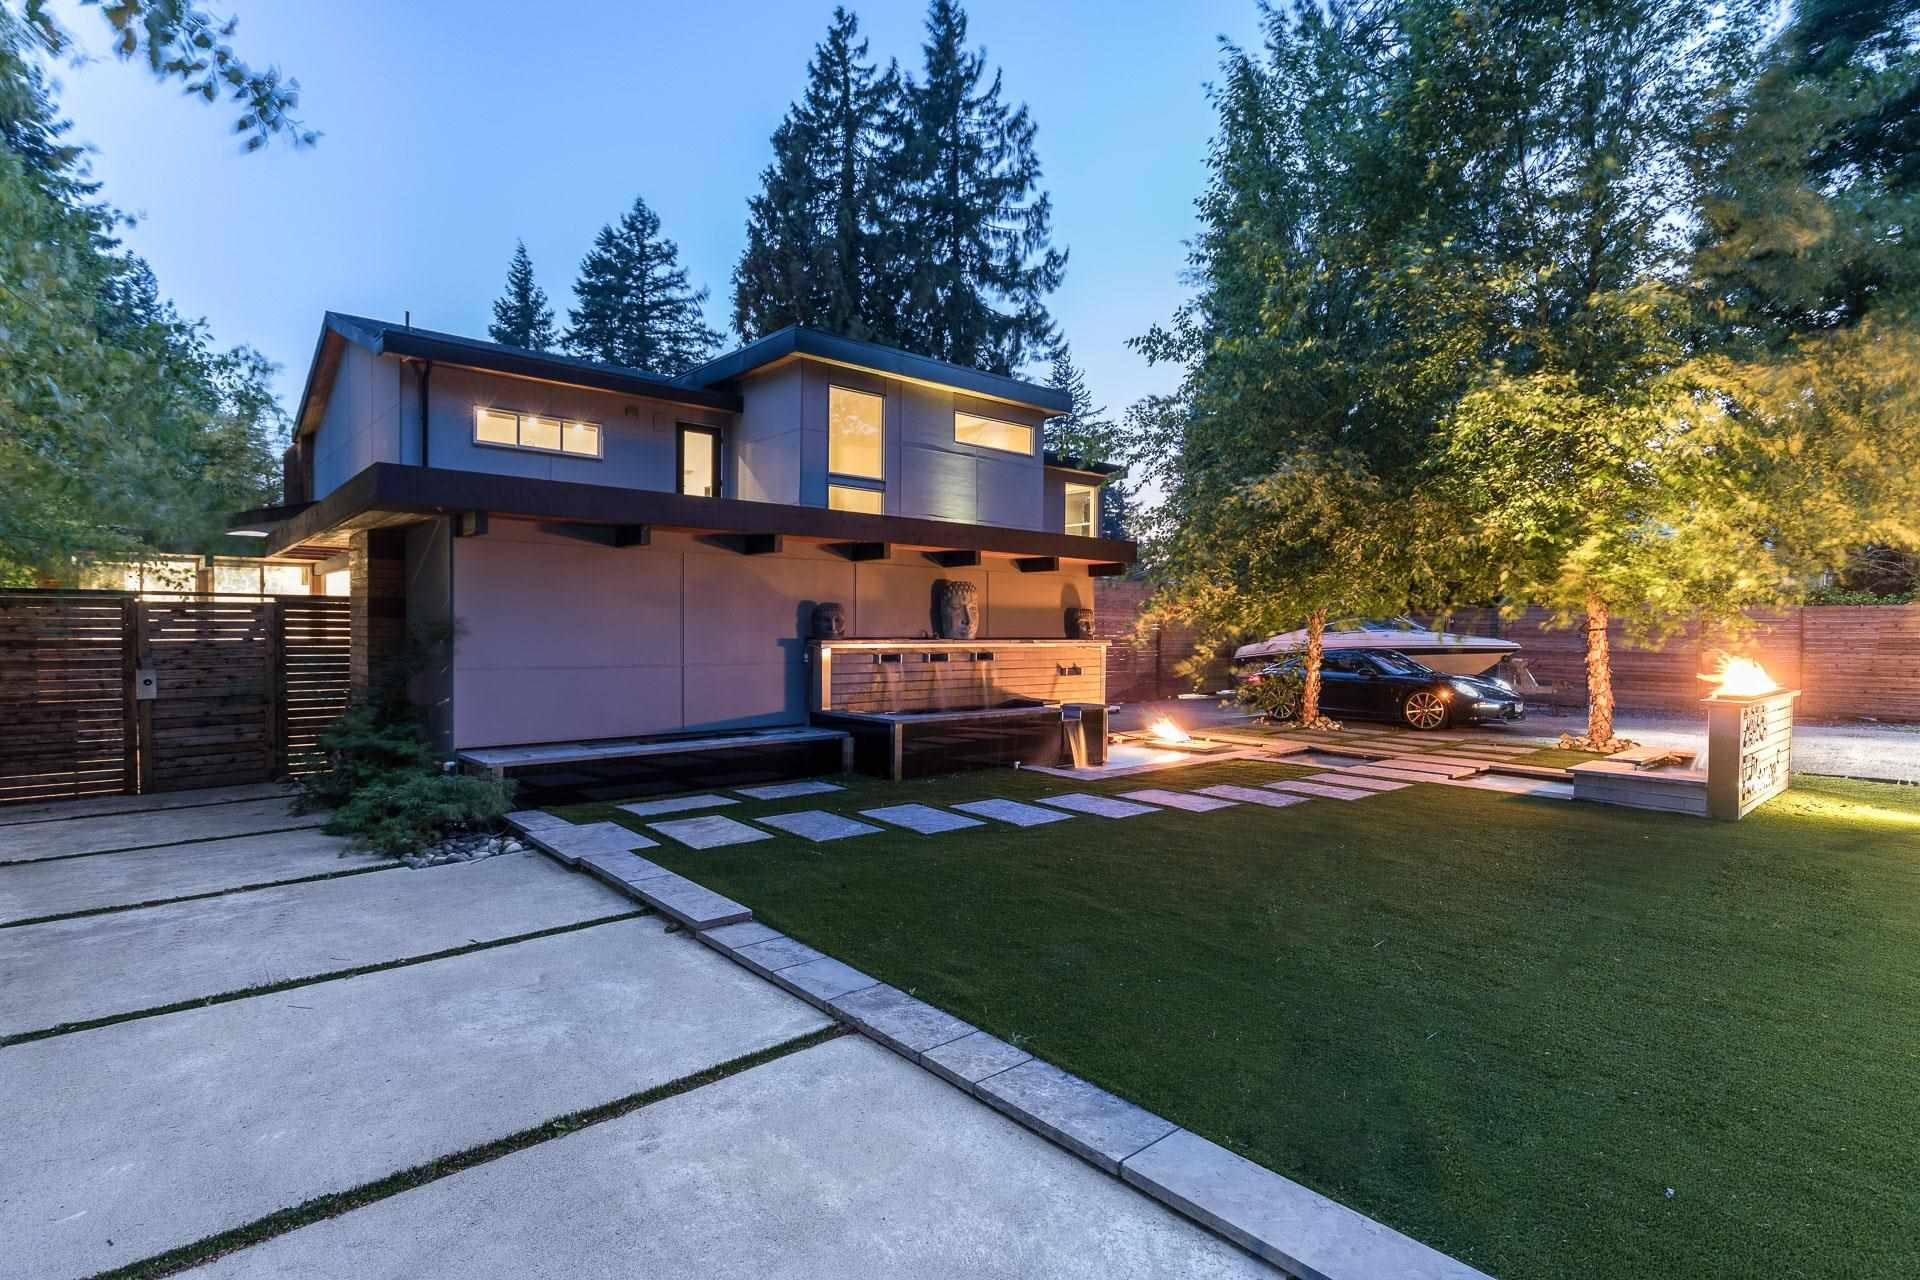 Main Photo: 2675 EDGEMONT Boulevard in North Vancouver: Edgemont House for sale : MLS®# R2599246